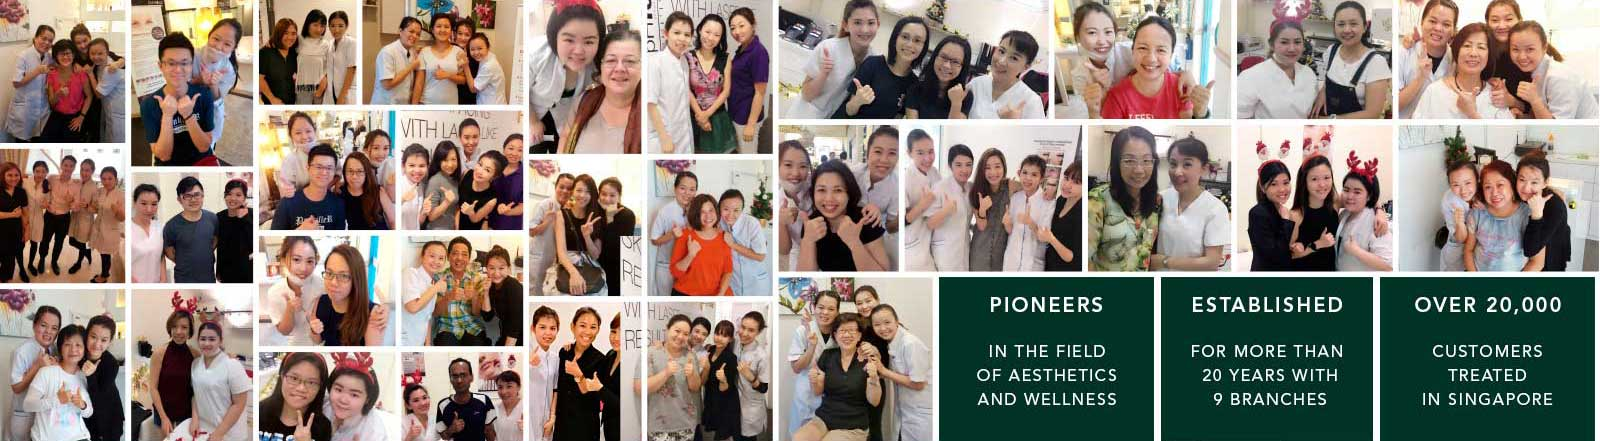 Having served more than 30,000+ satisfied customers and with over 20 years of experience, our results-driven aesthetics group ensures 100% safety and effectiveness on all our procedures. Our 9 branches are located islandwide in Singapore Orchard, Dhoby Ghaut, Bishan, Tampines & Clementi and in Western Australia.